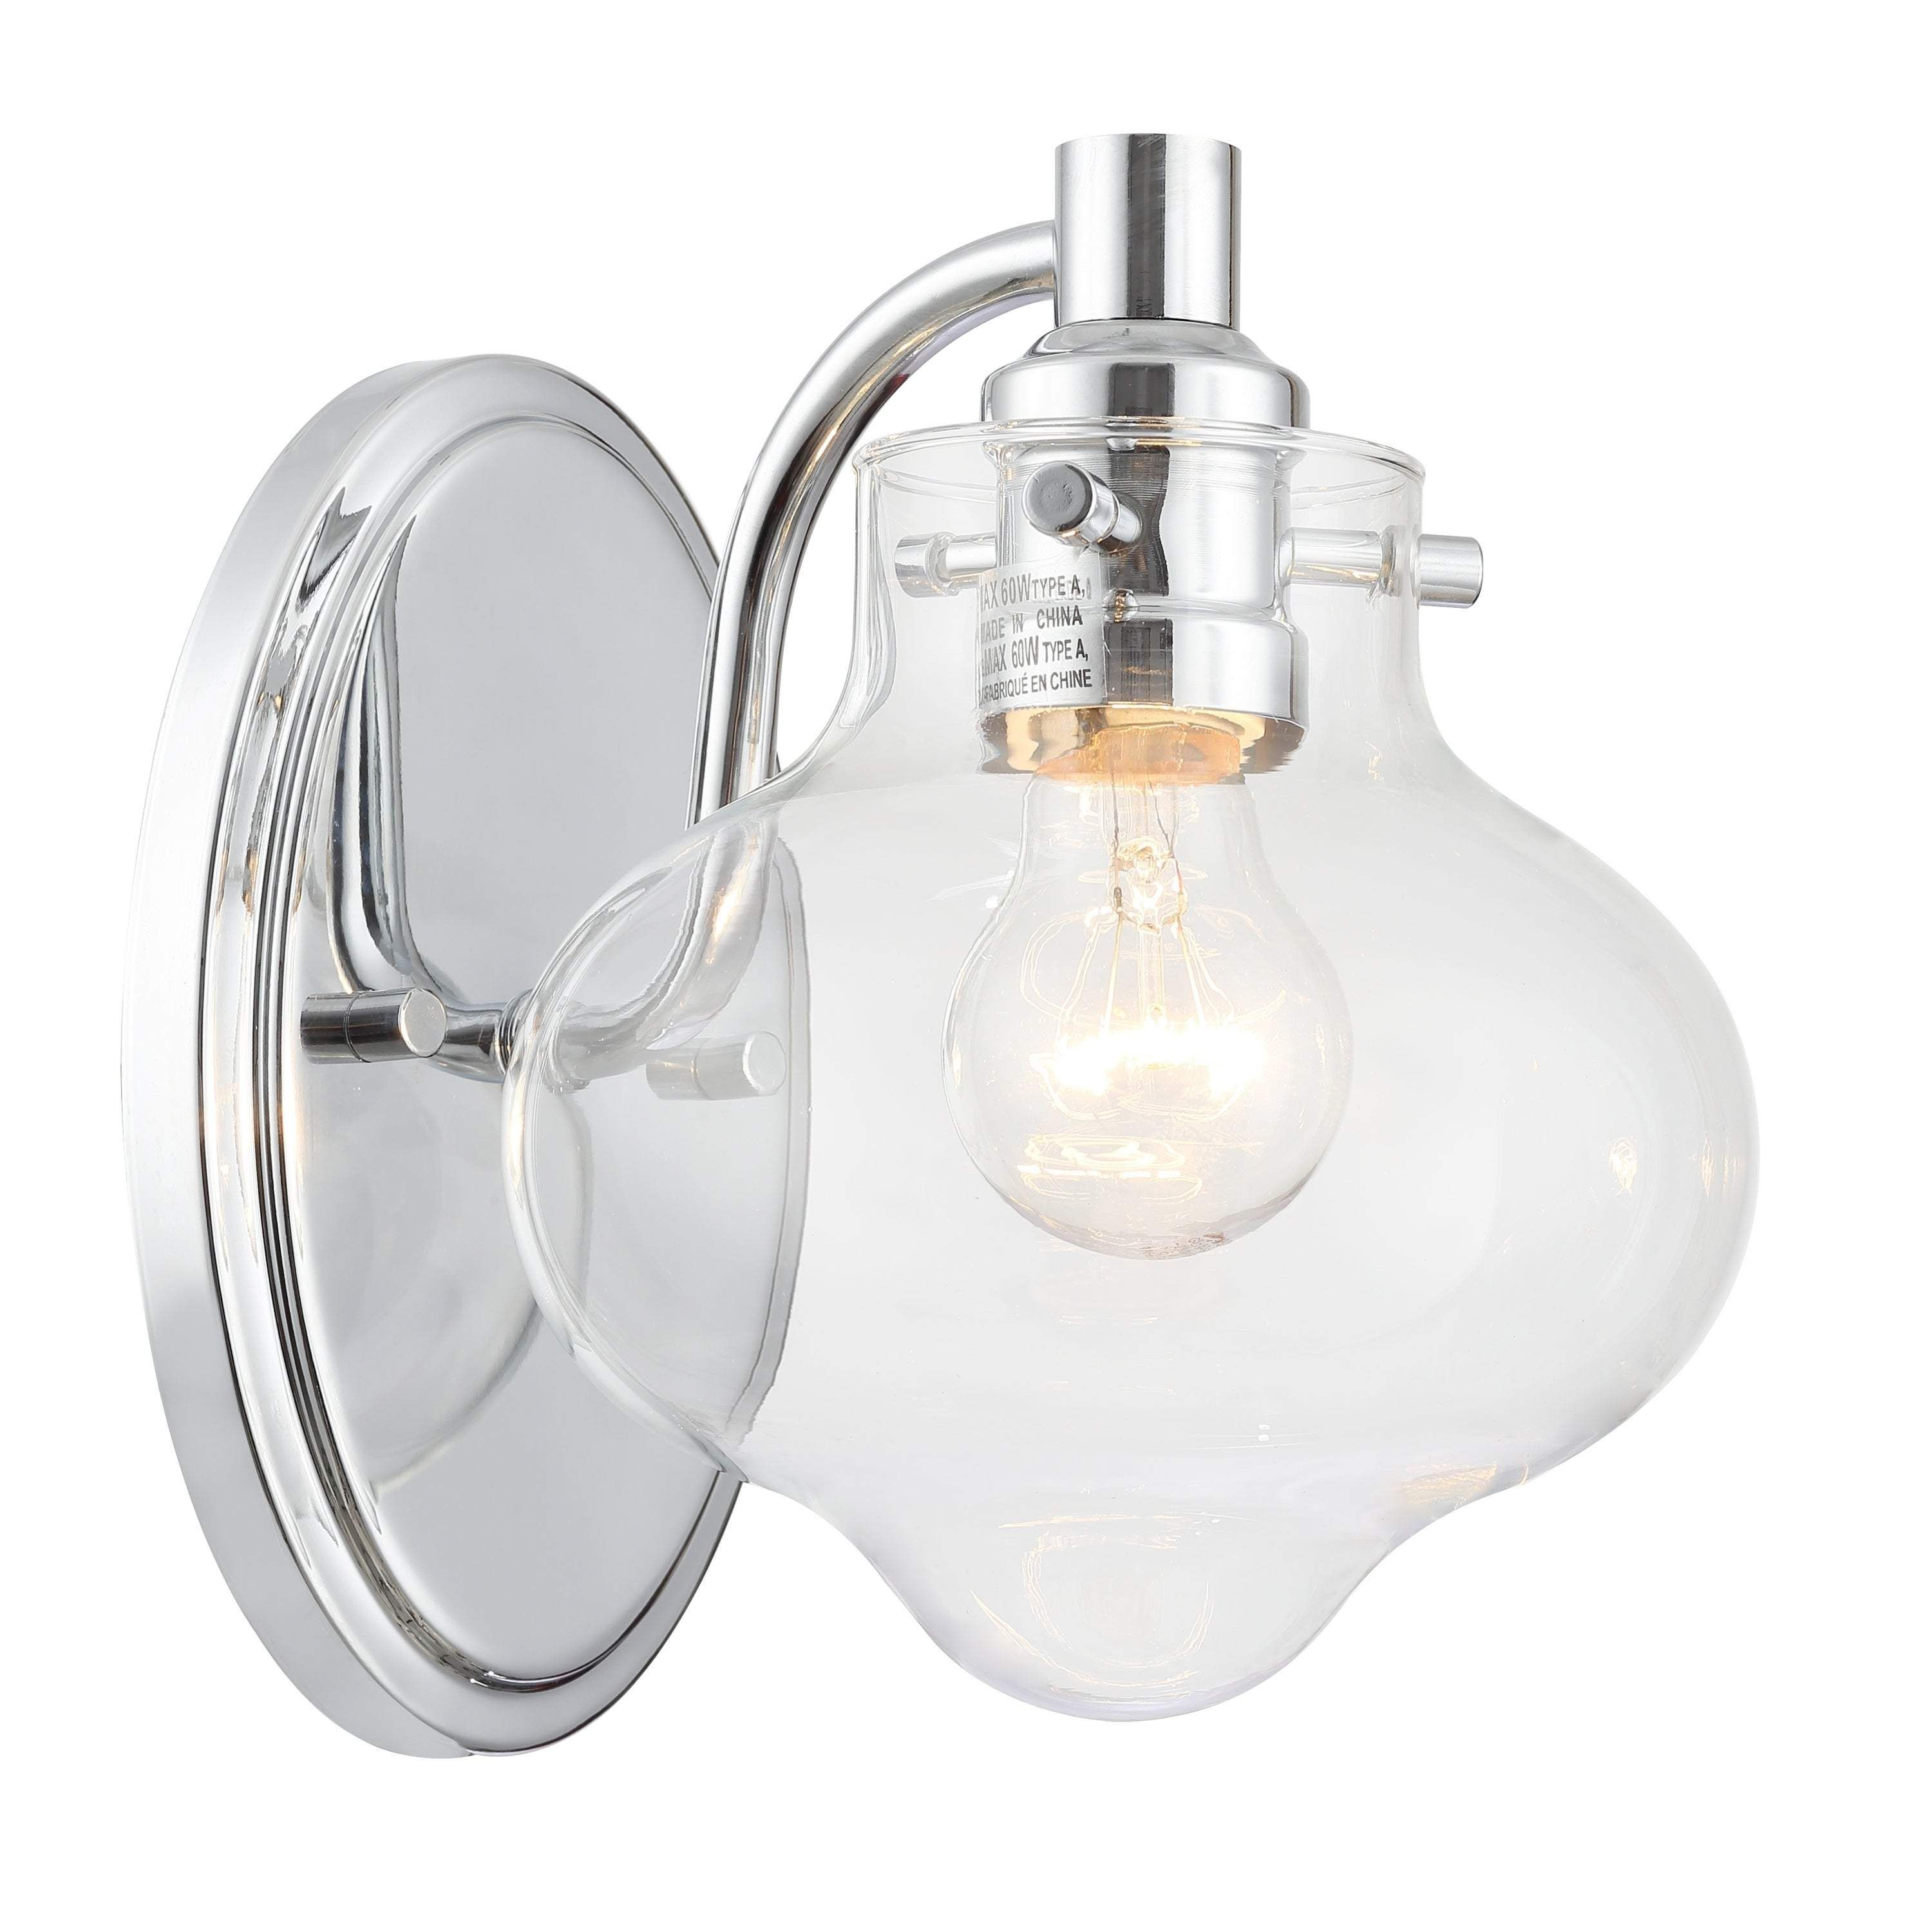 Industrial 1-light Polished Chrome Wall Sconce